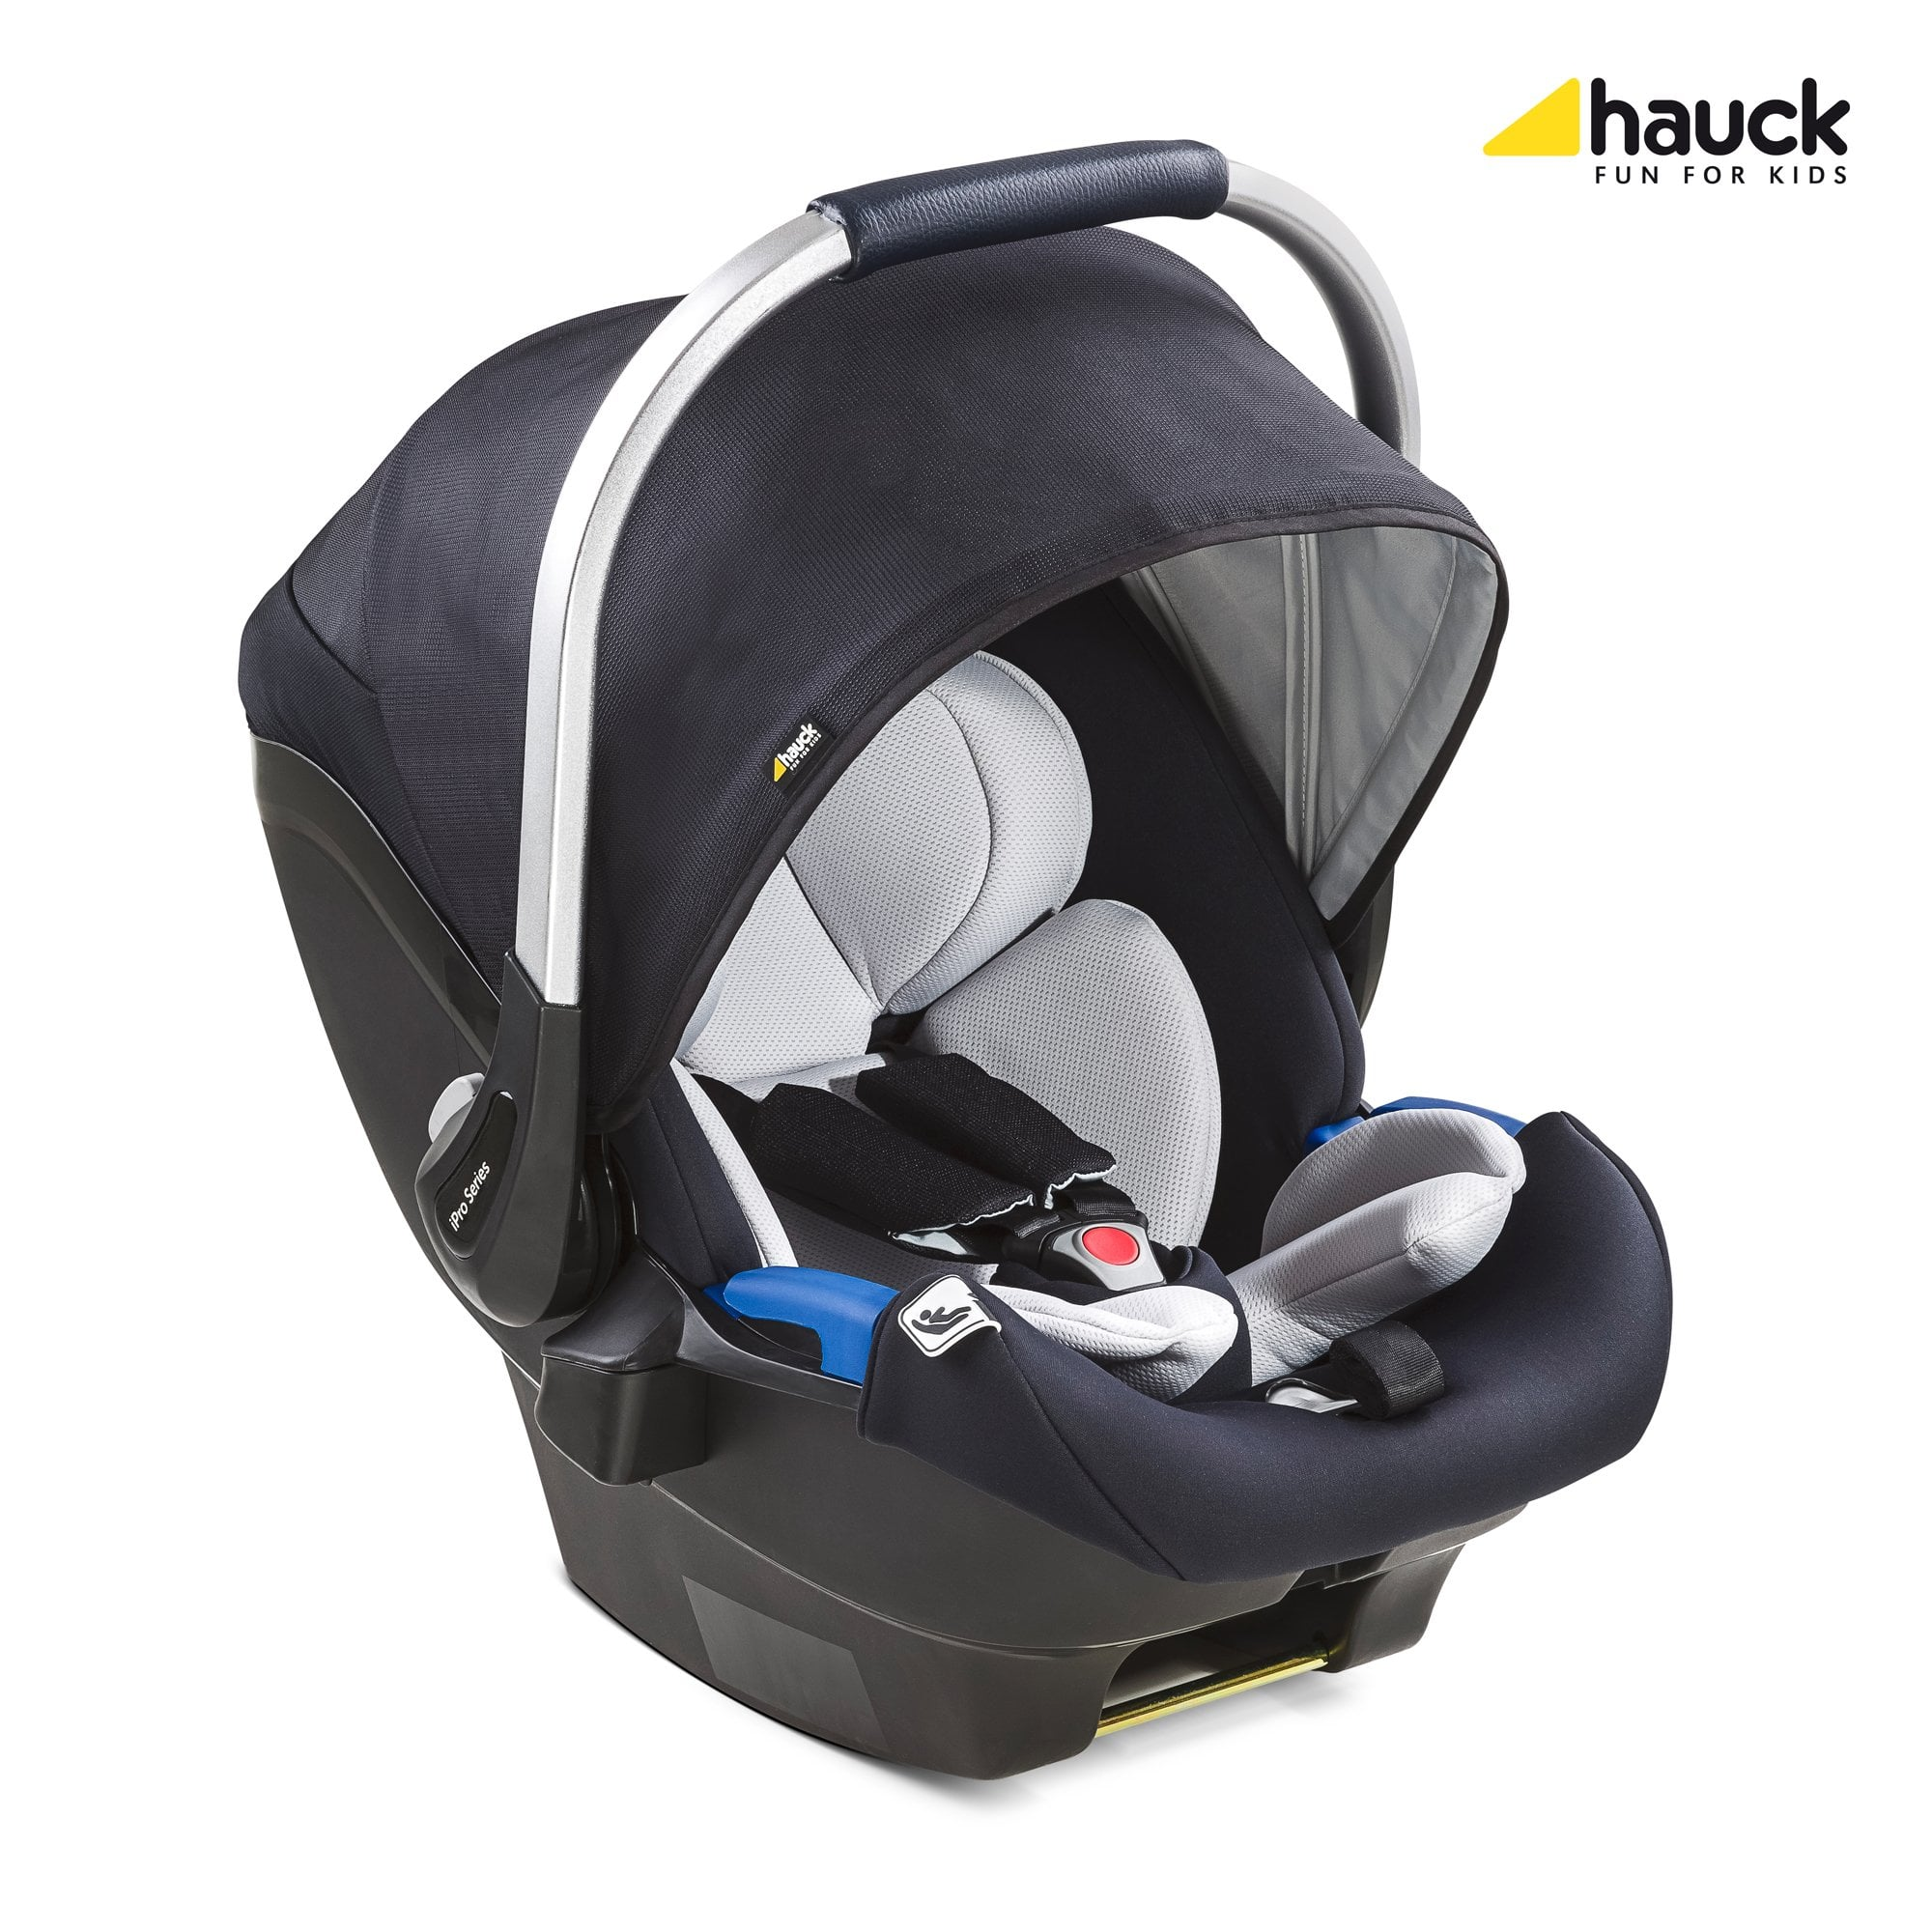 Hauck Ipro Baby Car seat - Carriers